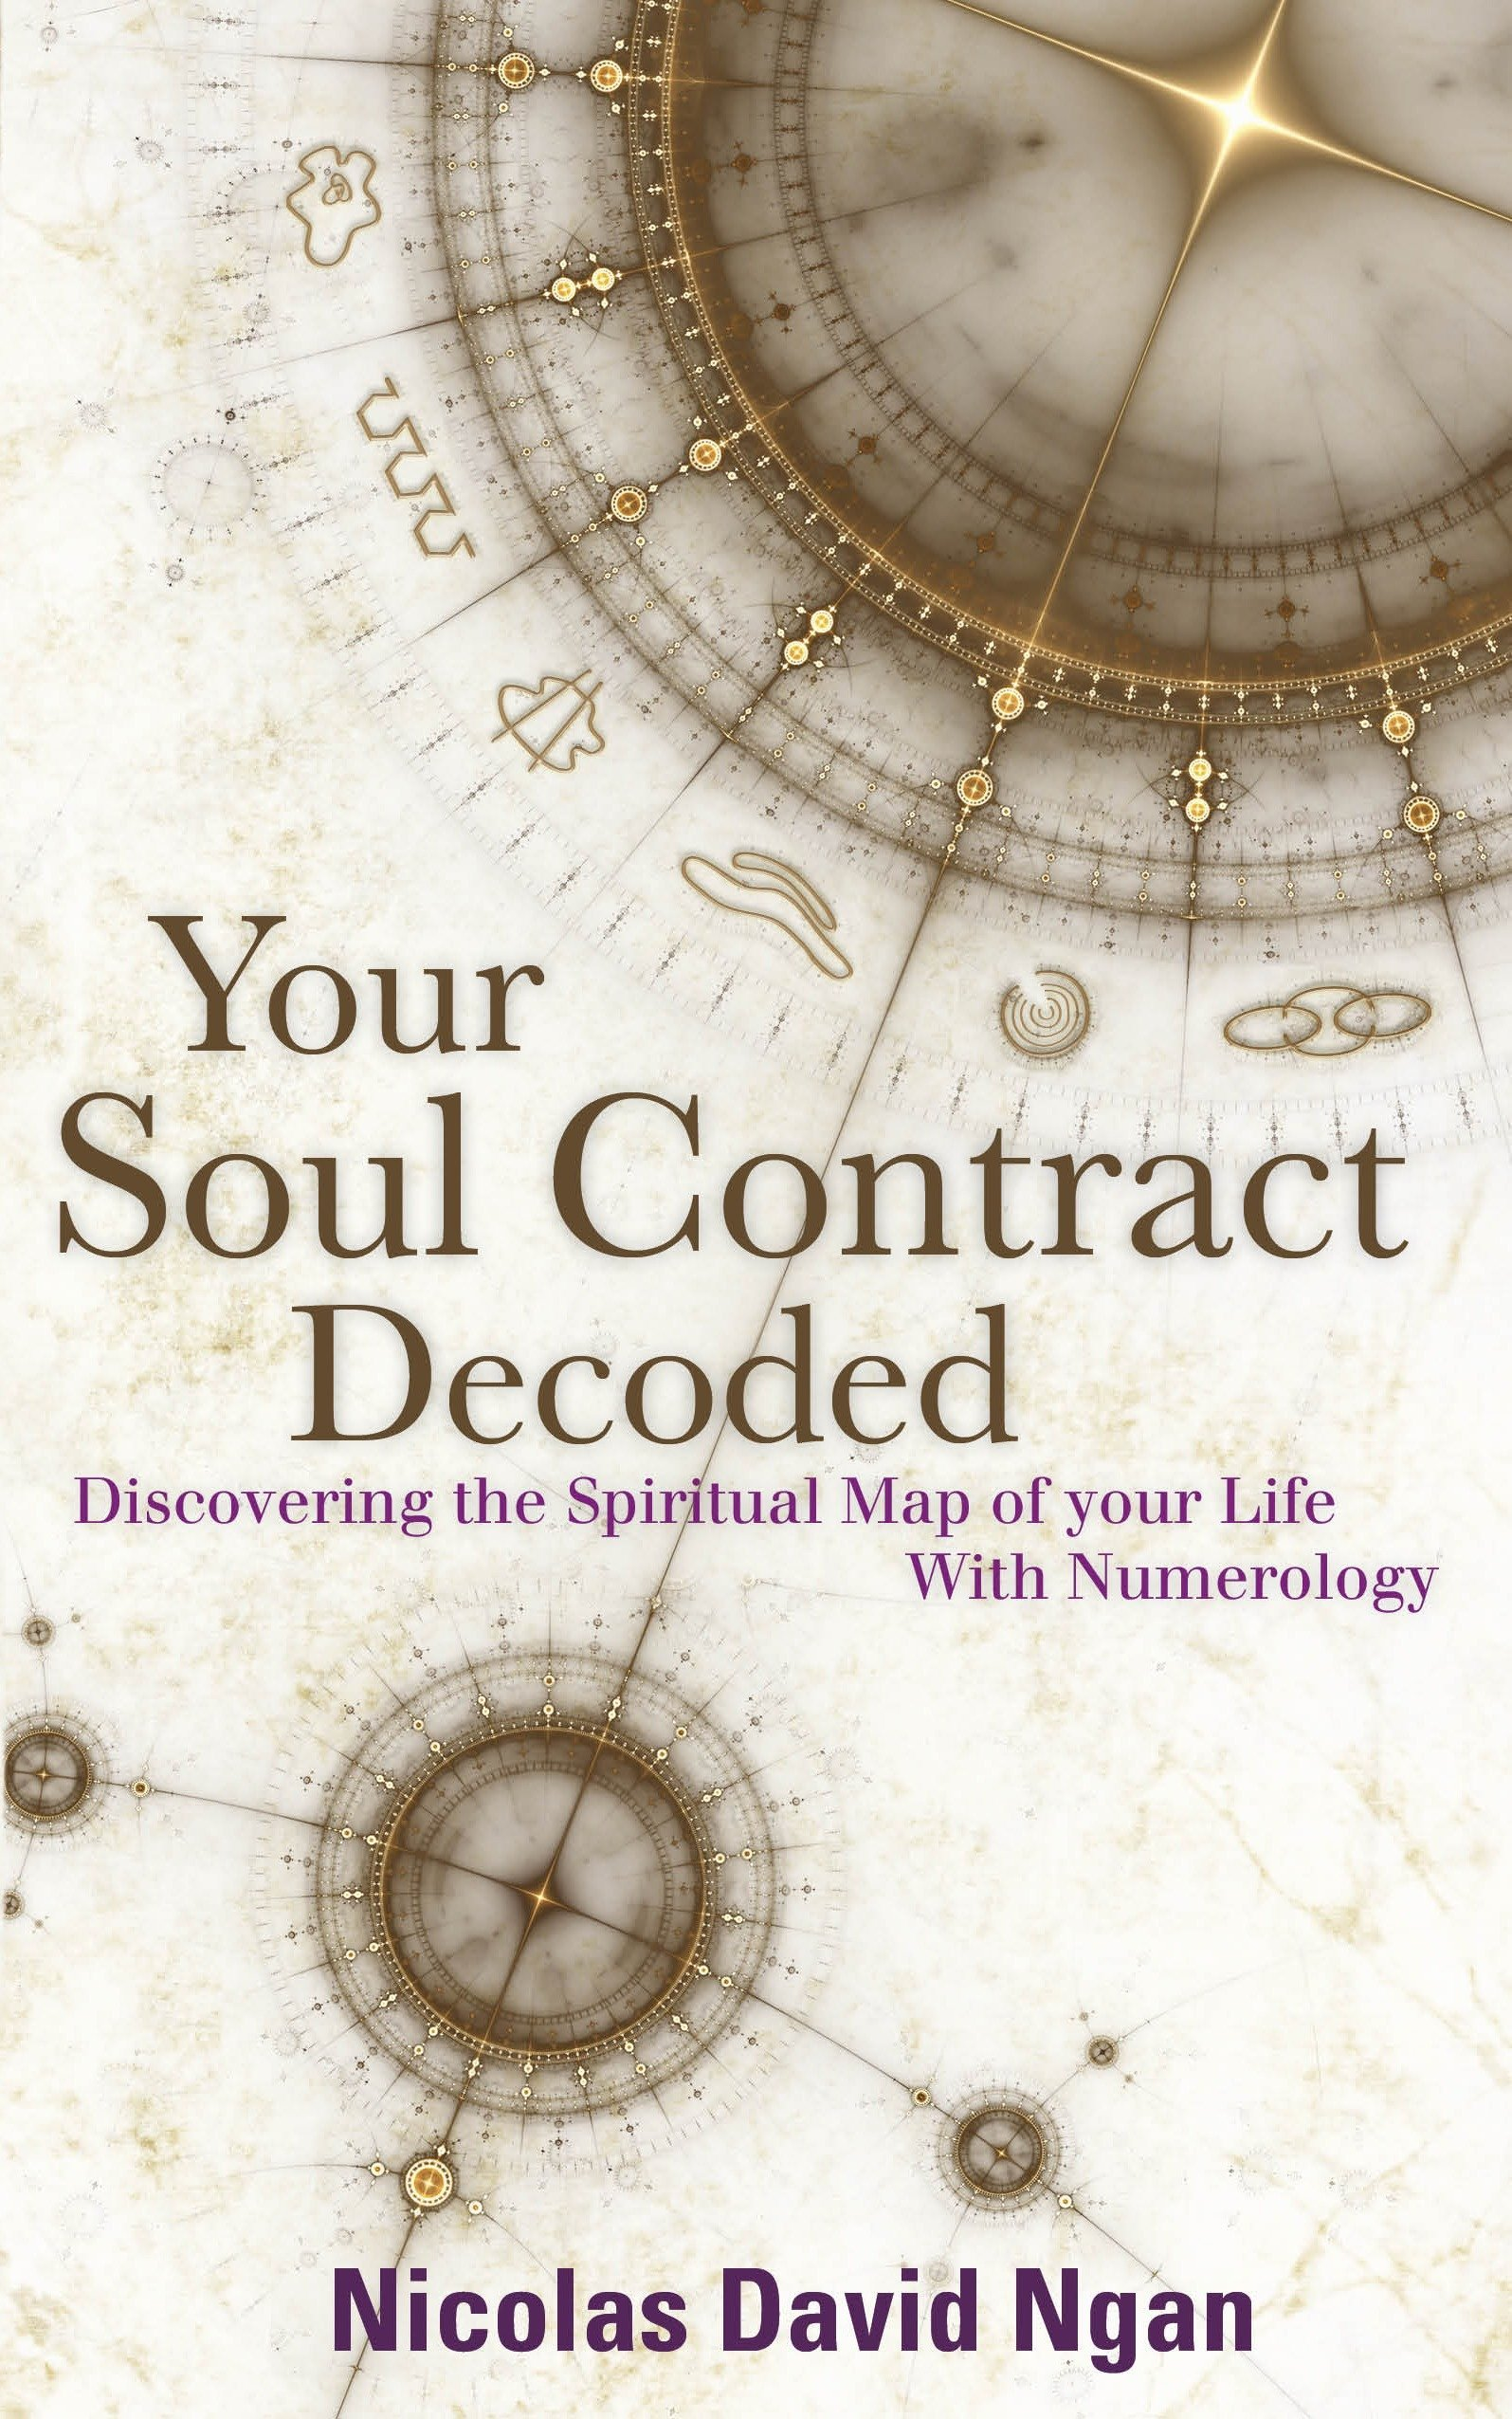 Your soul contract decoded discovering the spiritual map of your your soul contract decoded discovering the spiritual map of your life with numerology amazon nicolas david ngan 9781780285320 books malvernweather Choice Image